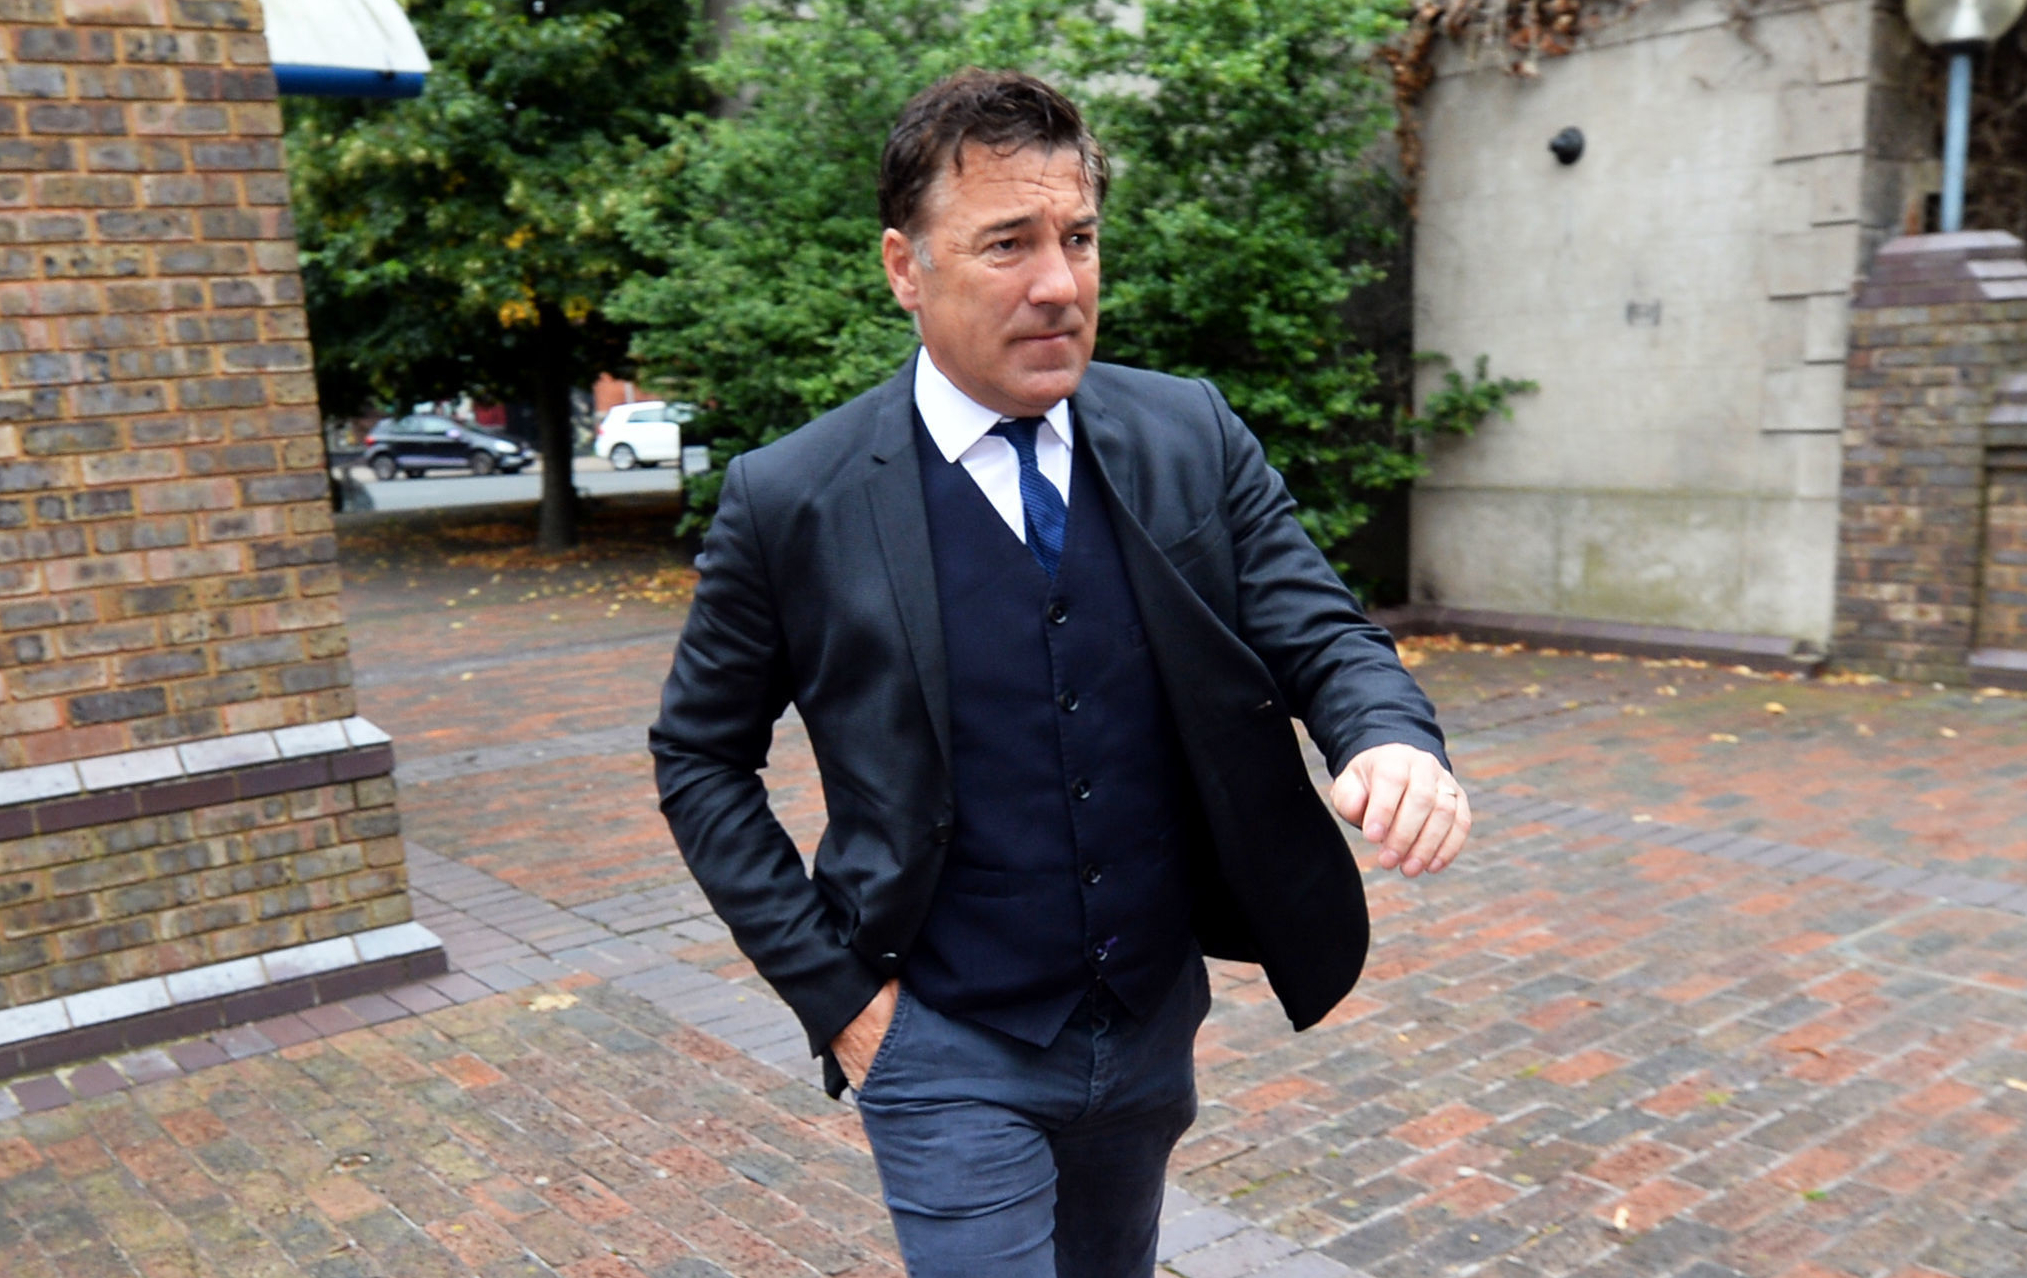 Former Wrexham manager Dean Saunders appealing against jail sentence after traffic stop